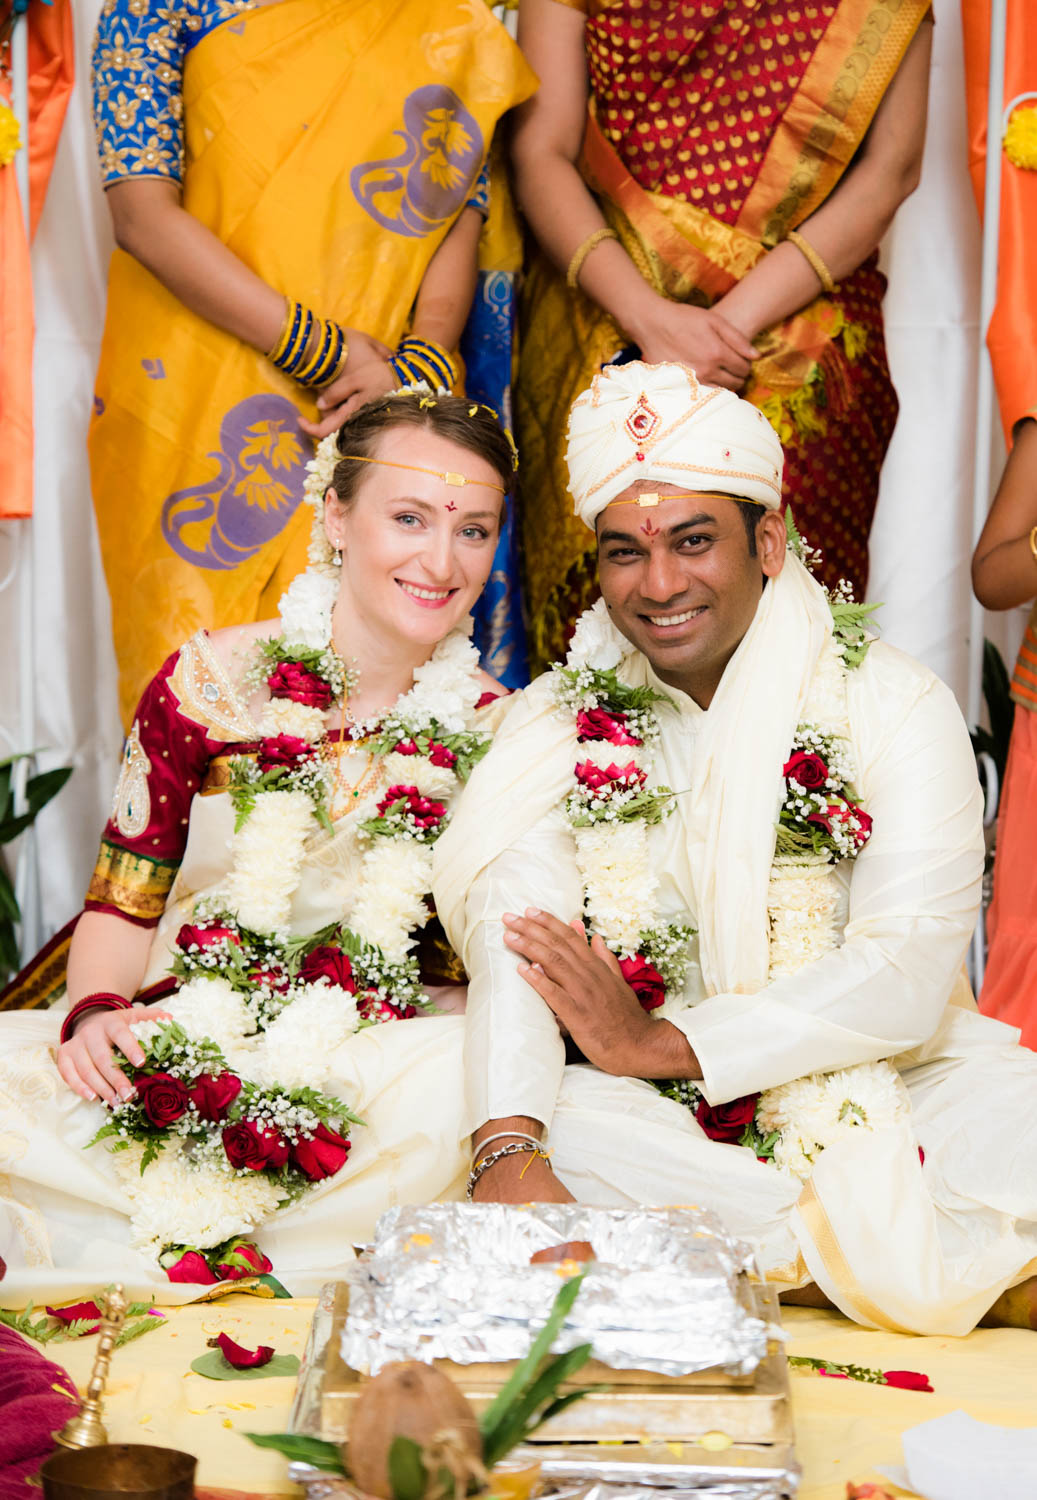 ecaterina-chandu-indian-wedding25.jpg